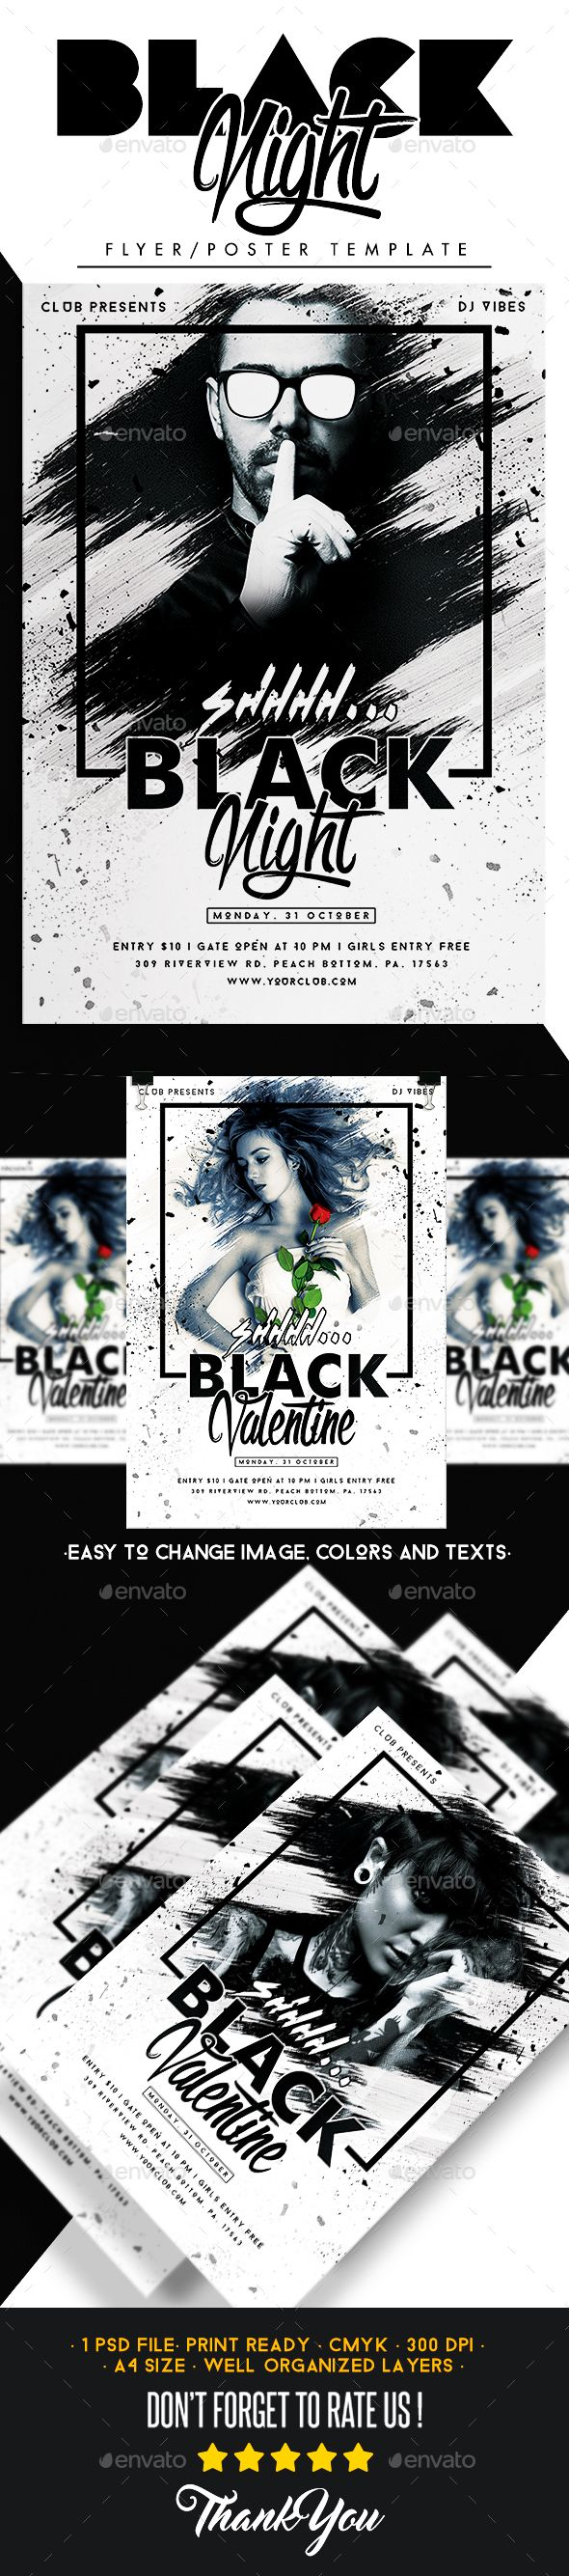 Black Night Flyer  — PSD Template #template #vip • Download ➝ https://graphicriver.net/item/black-night-flyer/18358382?ref=pxcr